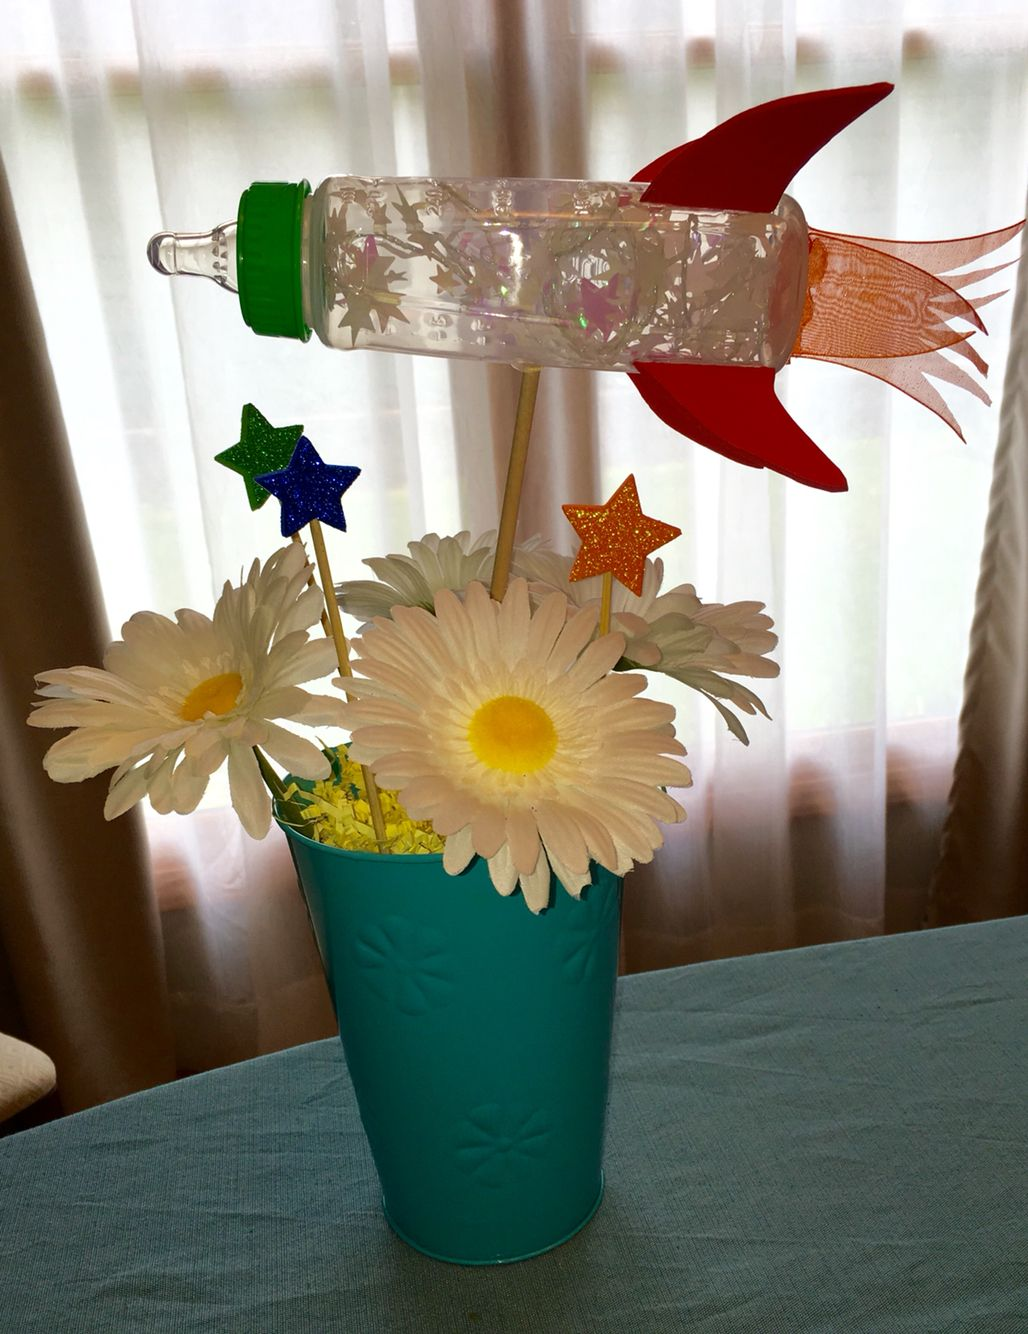 Baby Bottle Rocket Ships For A Space Theme Baby Shower!